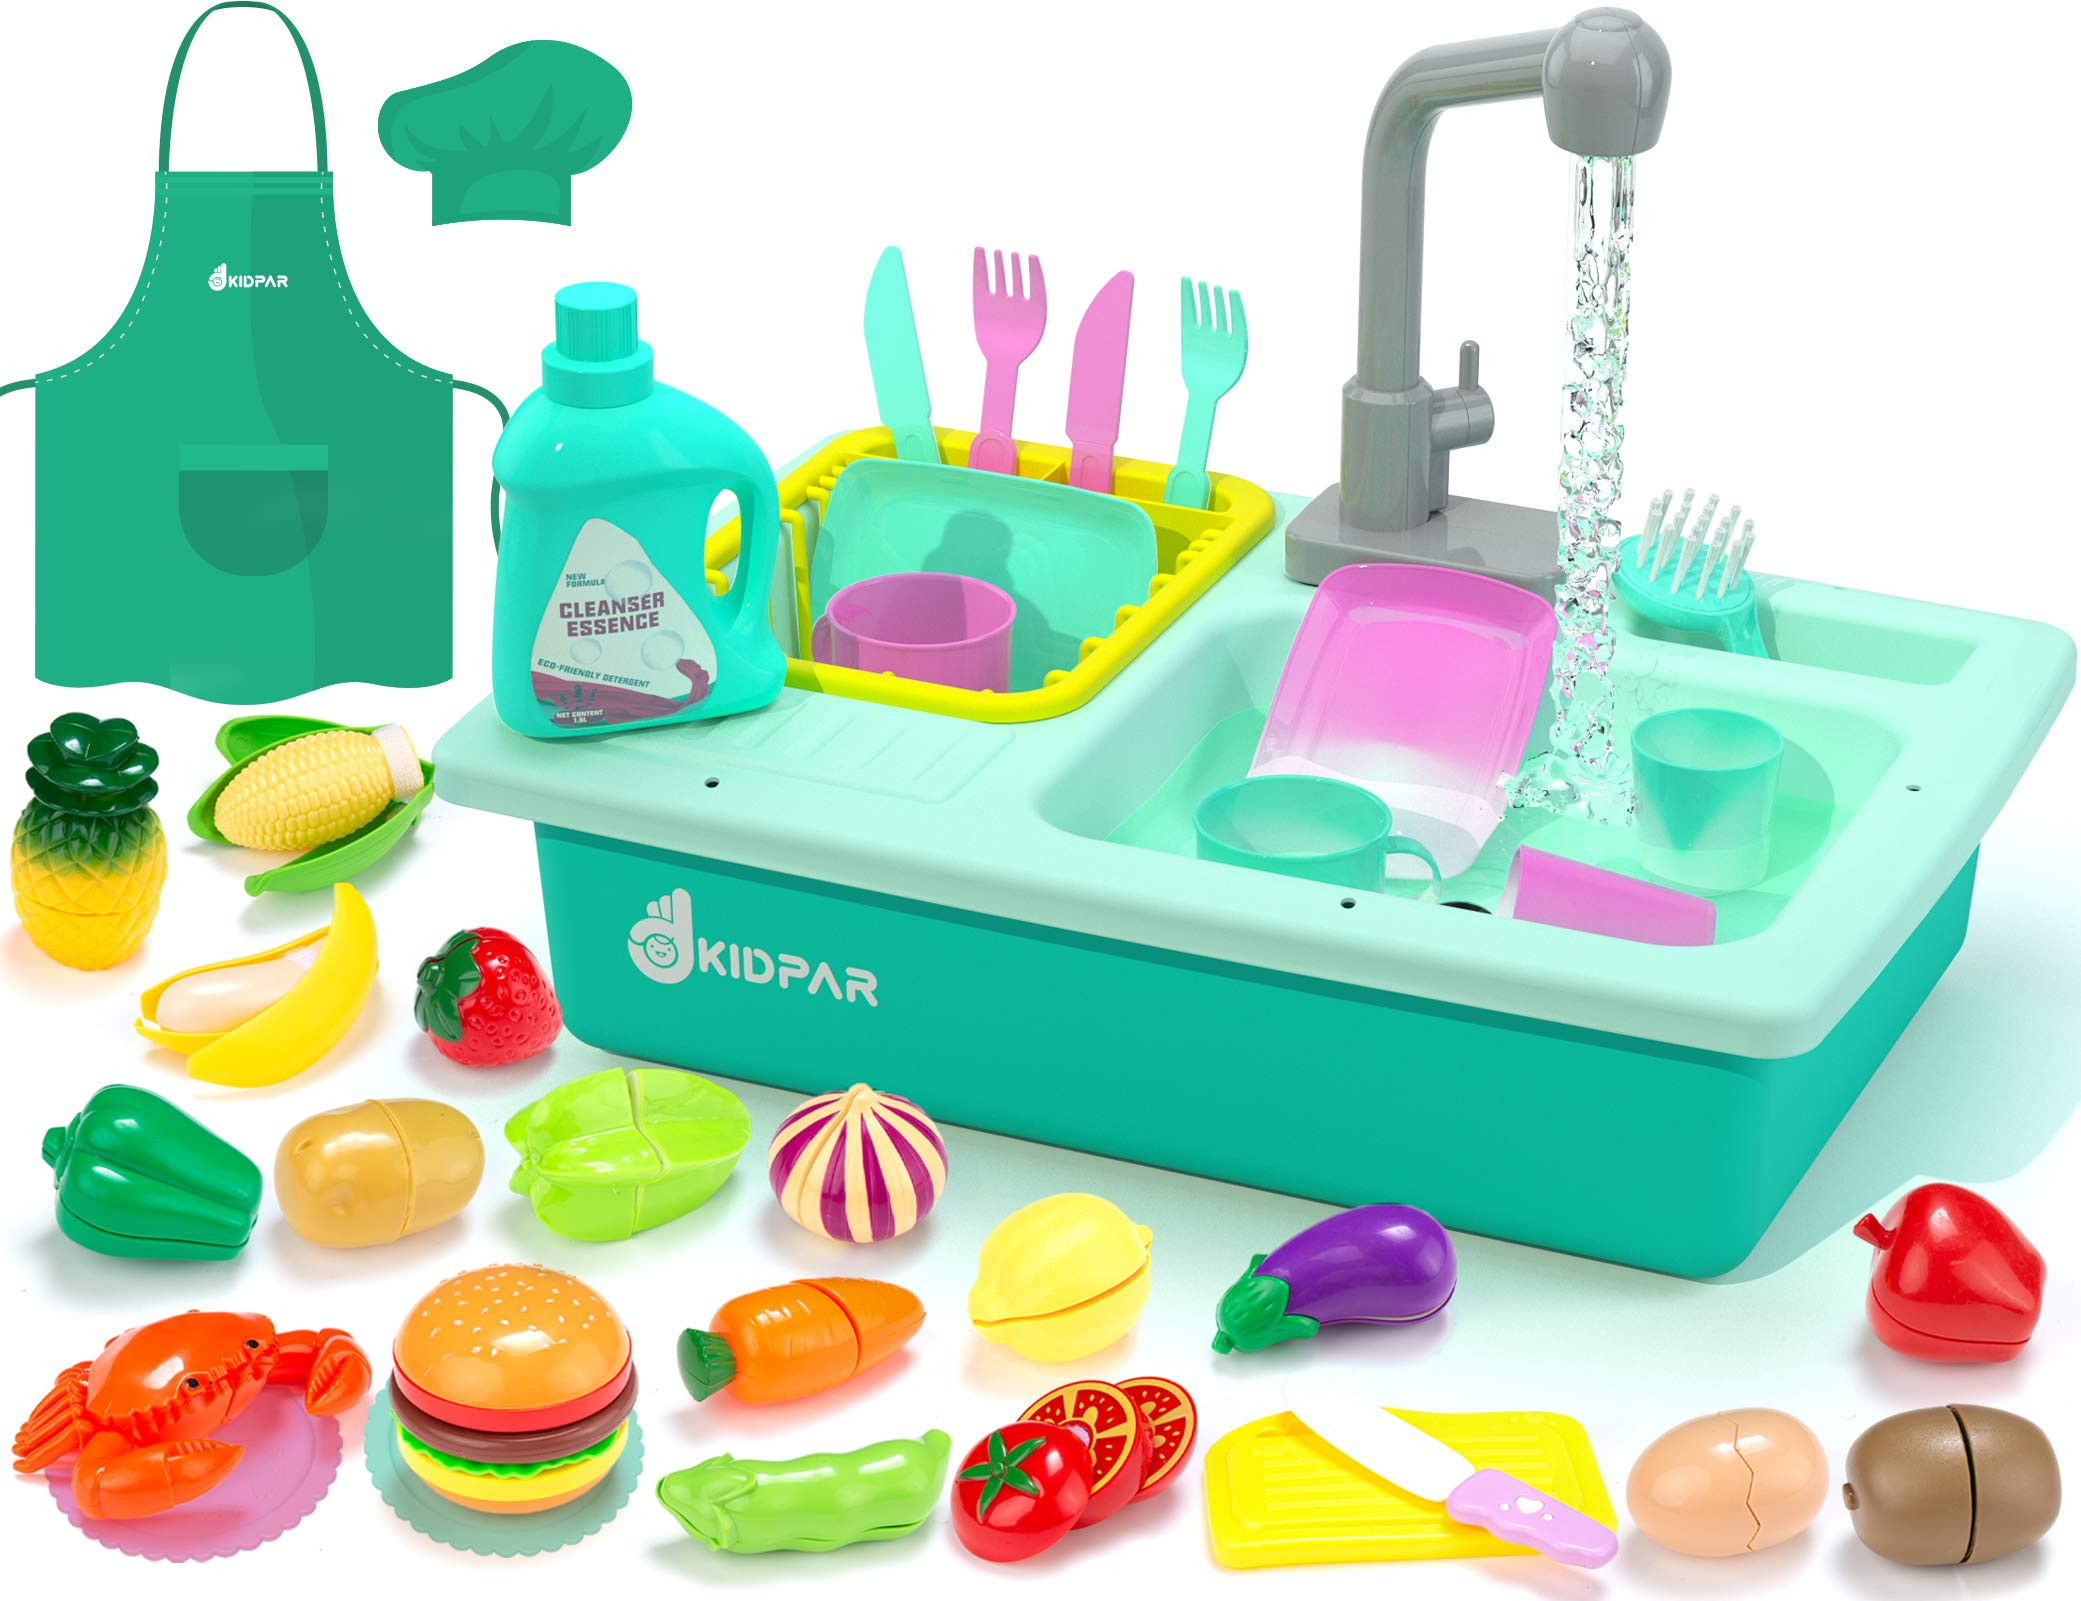 KIDPAR 38 Pcs Color Changing Kitchen Play Sink Toys for Kids,Toddler Electric Dishwasher with Auto Running Water Cycle System,Cutting Food,Chef's Apron,House Pretend Role Play Toys for Boys Girls